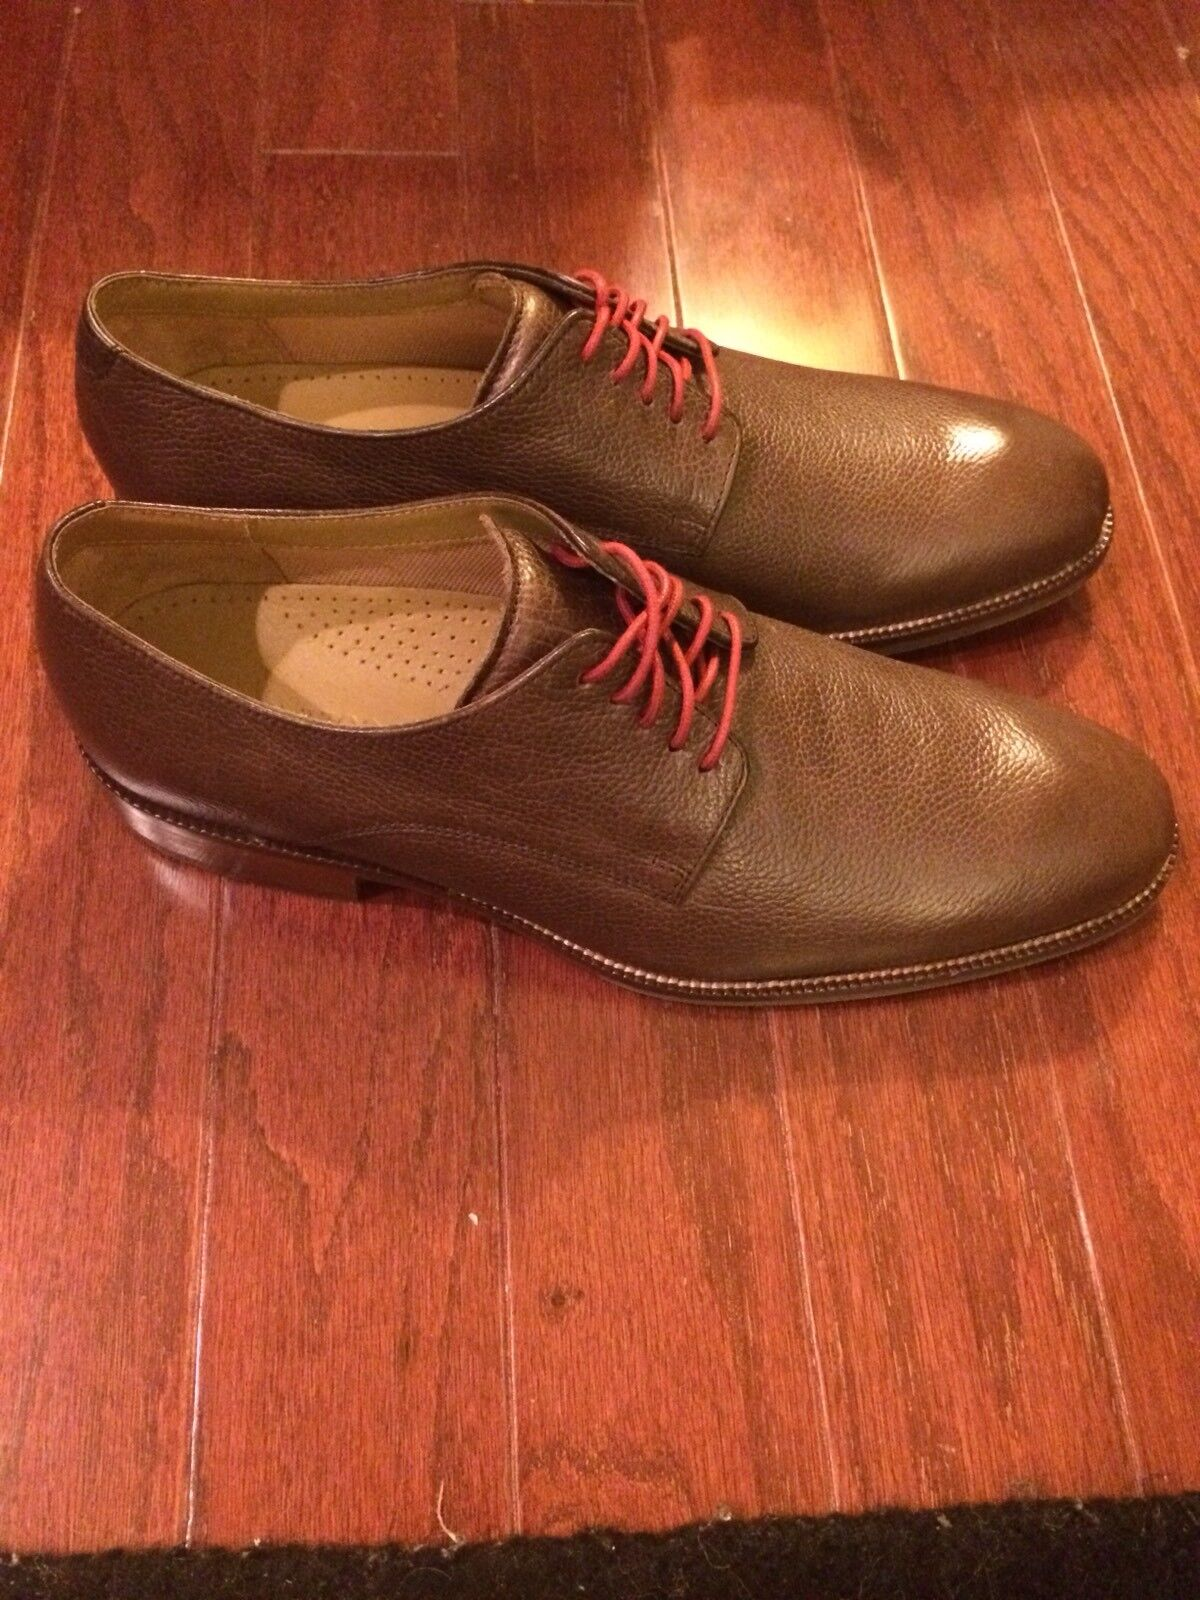 COLE HAAN BROWN LEATHER LACE UP SHOES MEN'S 10 M C12660